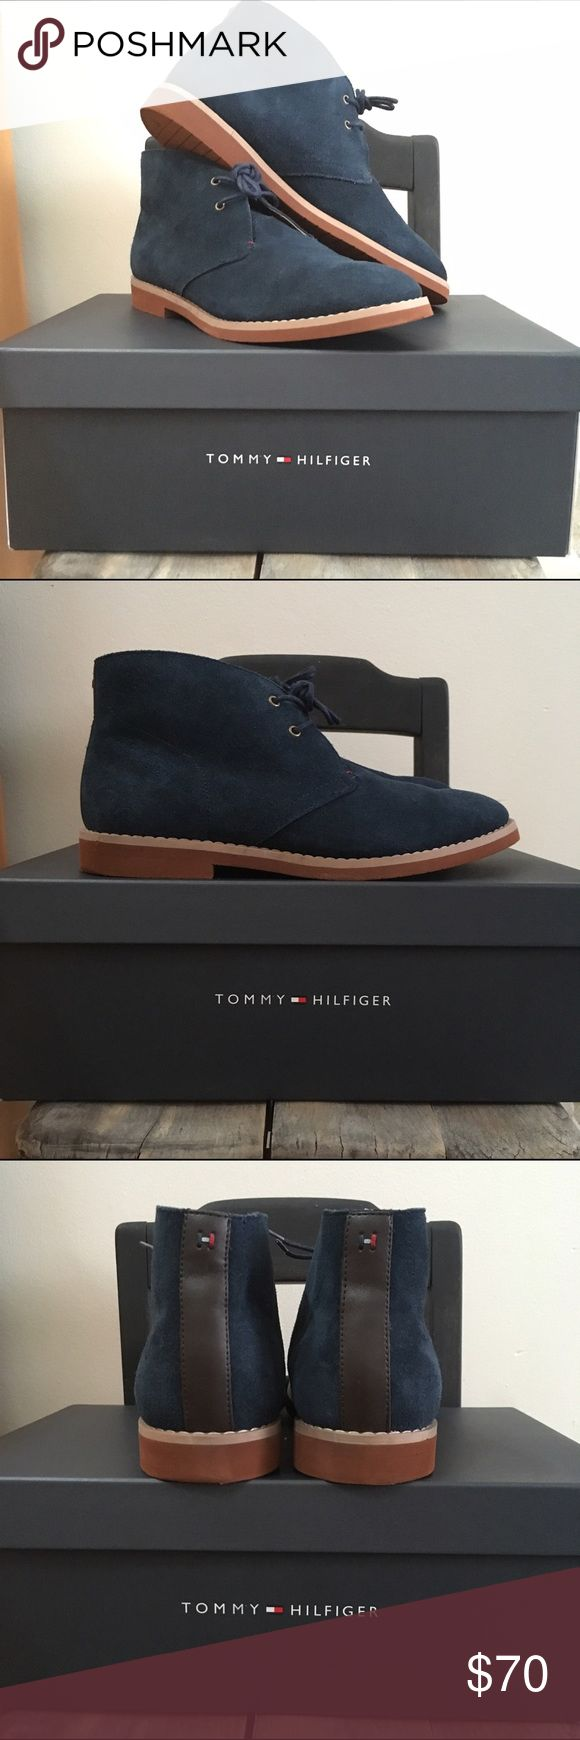 MEN'S TOMMY HILFIGER CHUKKA BOOT Tommy Hilfiger STEN chooka boot in NAVY BLUE. Worn only a handful of times- LIKE NEW Condition! Slight depressions in the heels of both shoes, otherwise still in perfect shape! Tommy Hilfiger Shoes Chukka Boots